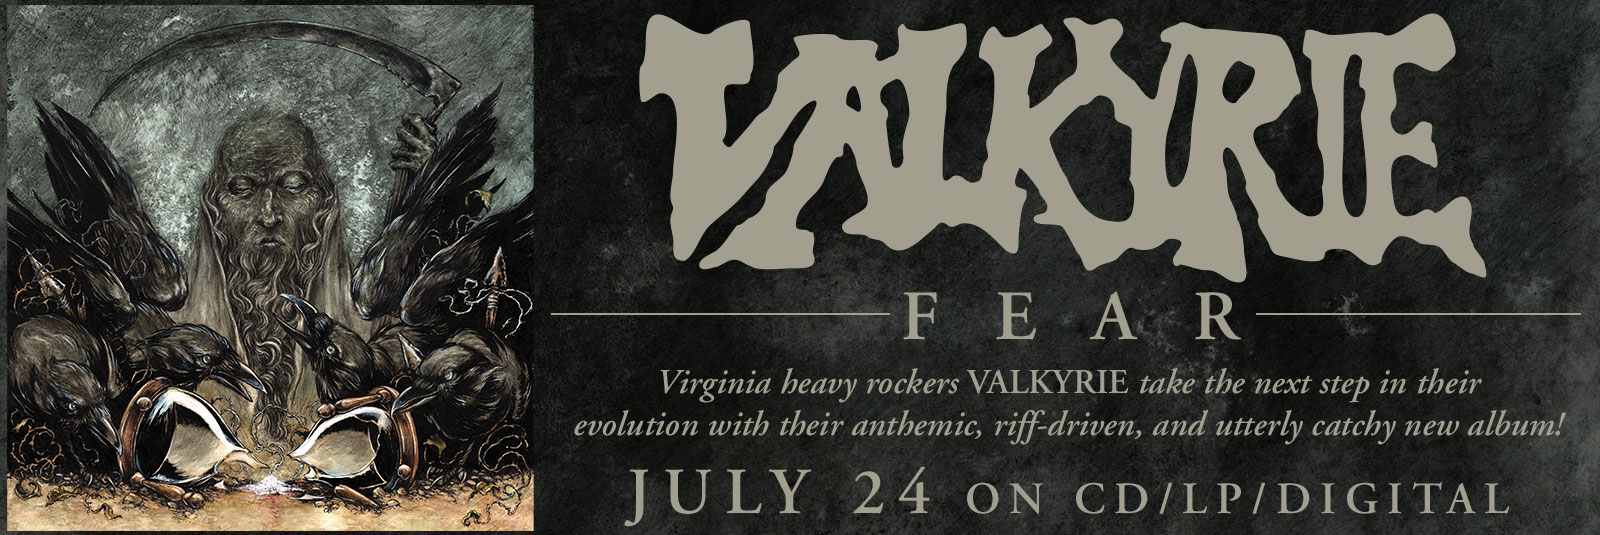 valkyrie-fear-southern-rock-heavy-rock-relapse-july-24